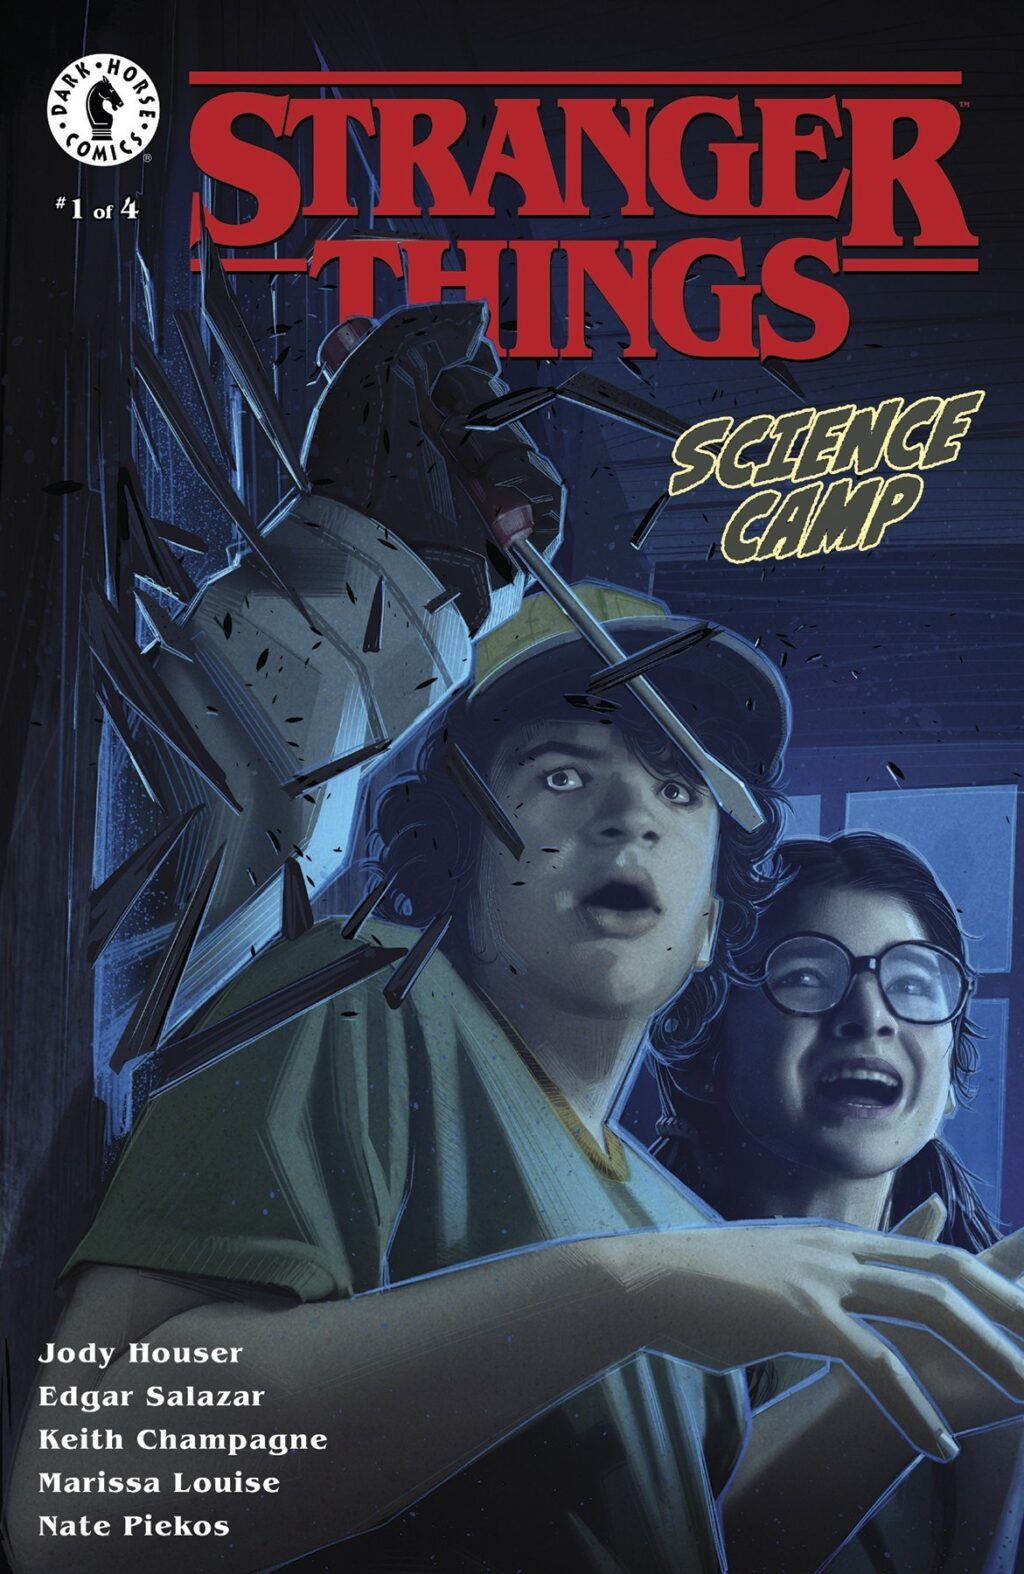 Stranger Things Science Camp 2 1024x1574 - STRANGER THINGS: SCIENCE CAMP Comic Miniseries Kicks Off This September